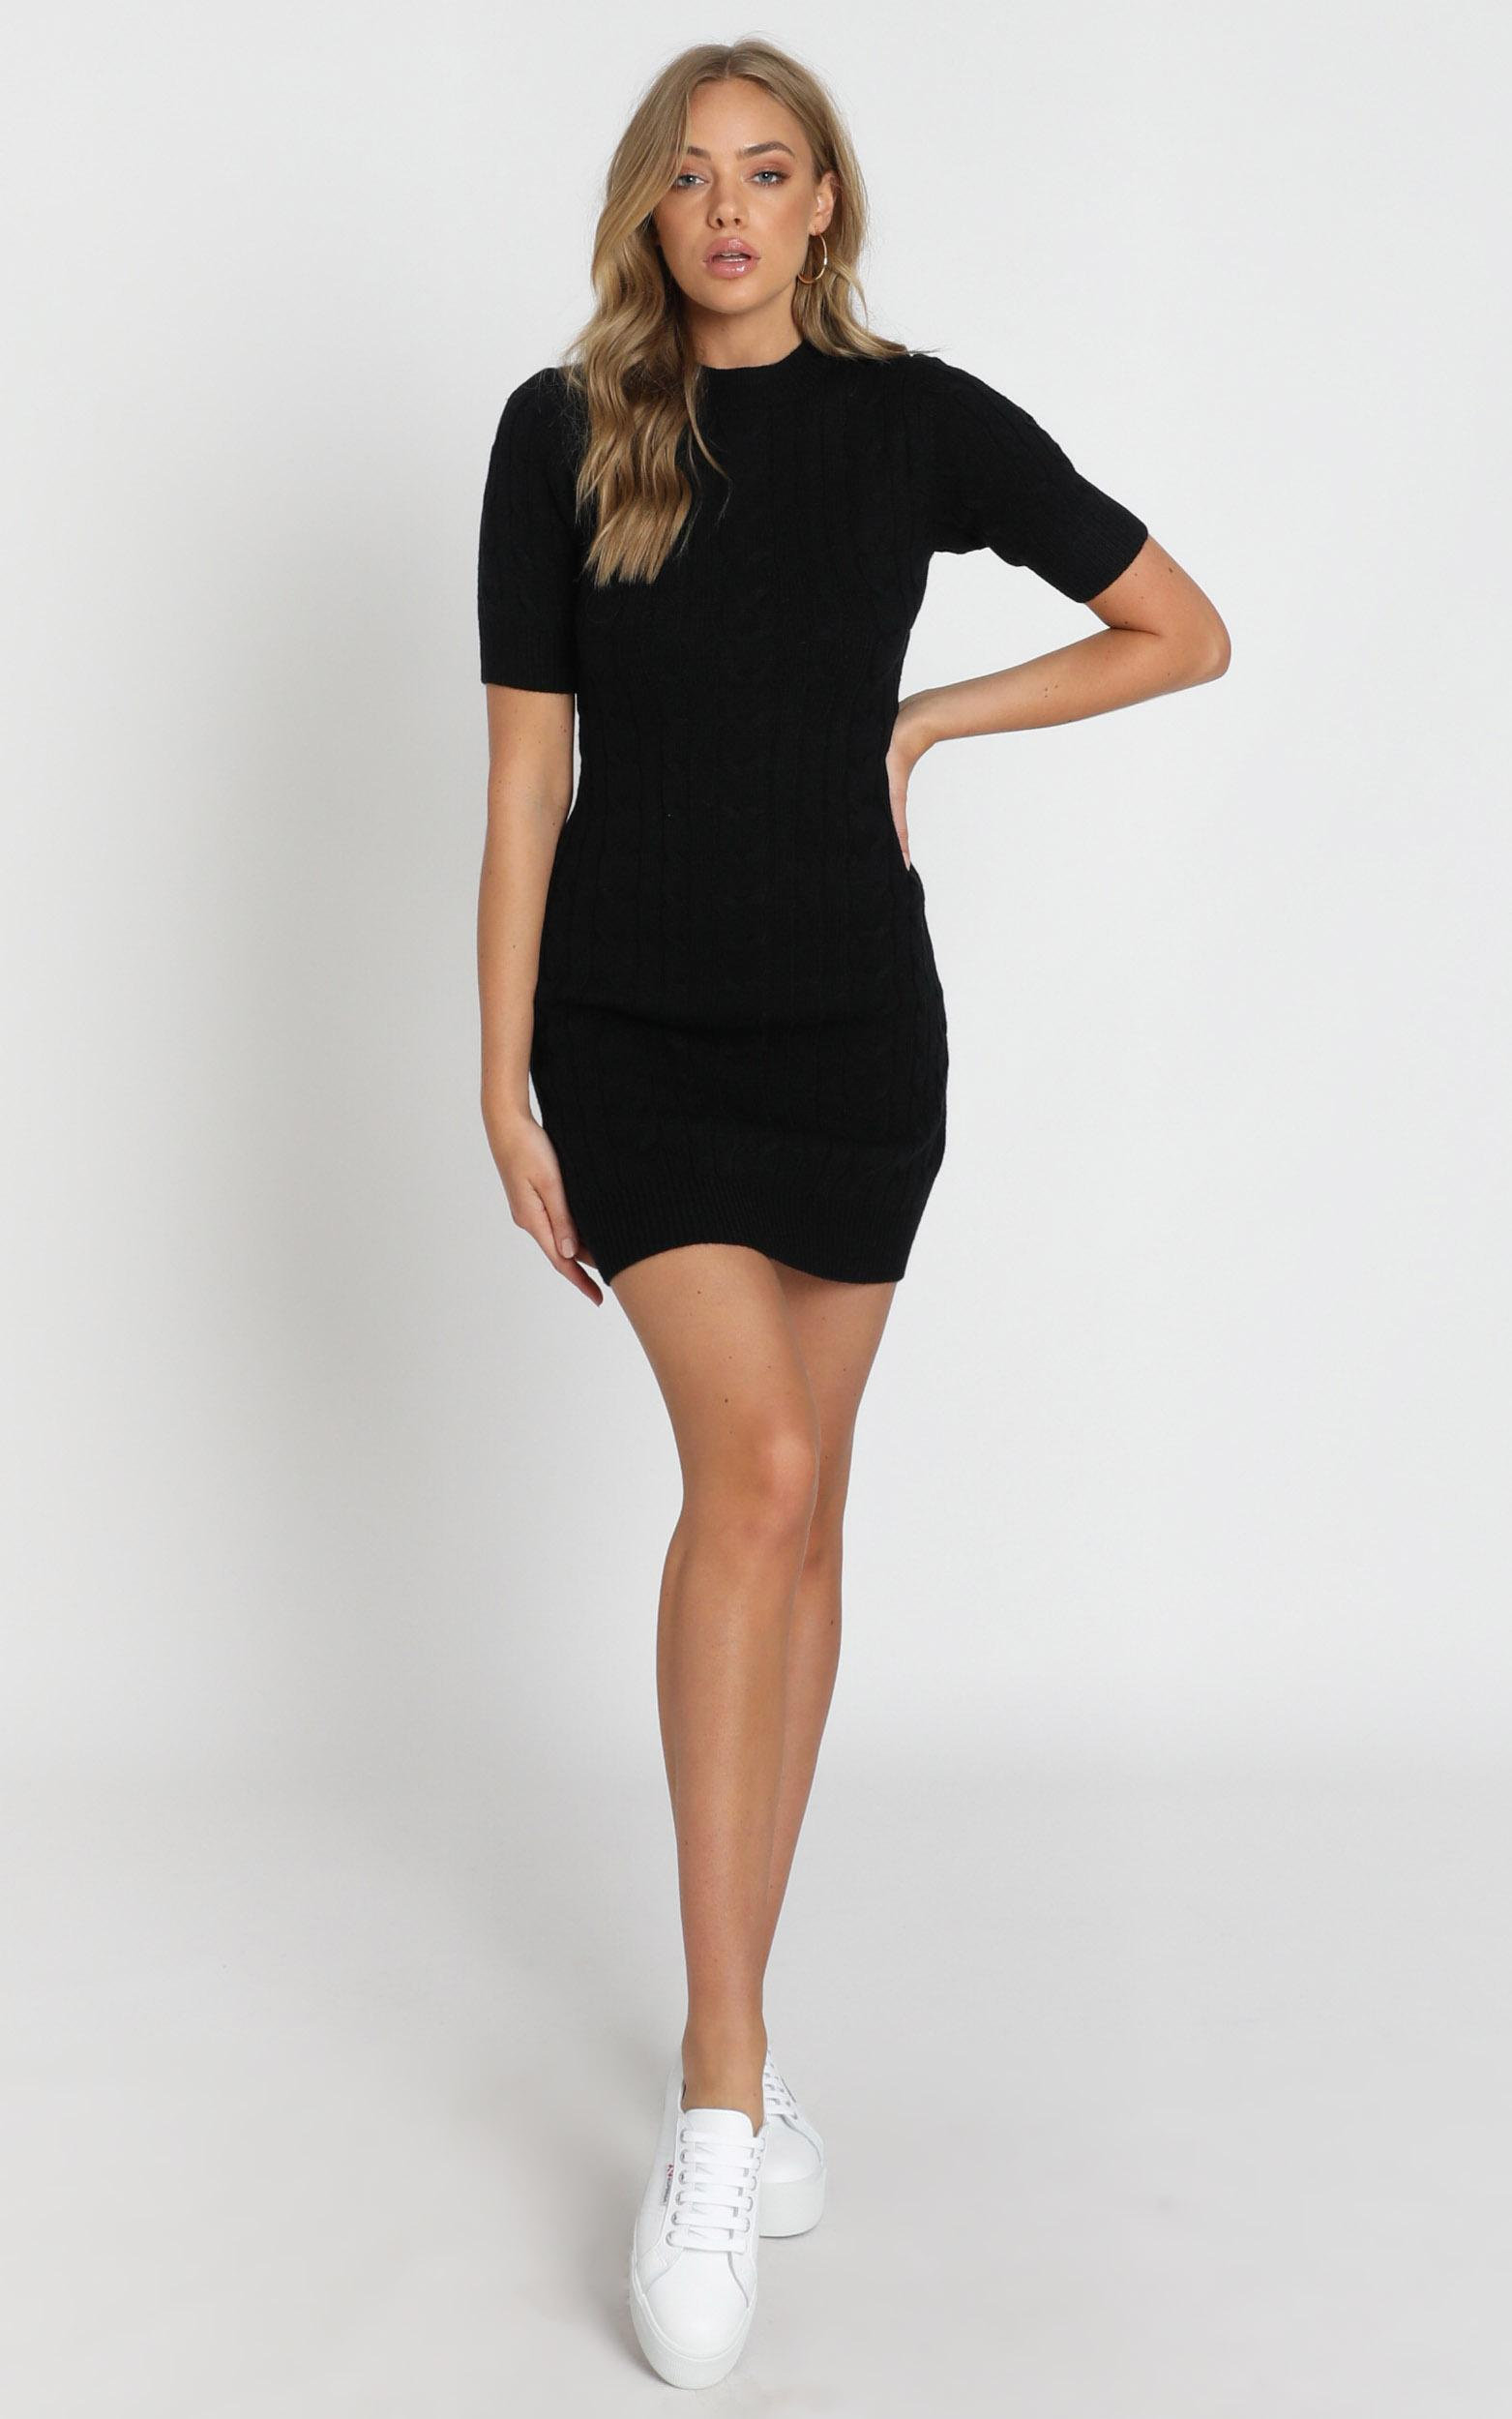 Winter Vacay Cable Knit Dress in black - 20 (XXXXL), Black, hi-res image number null